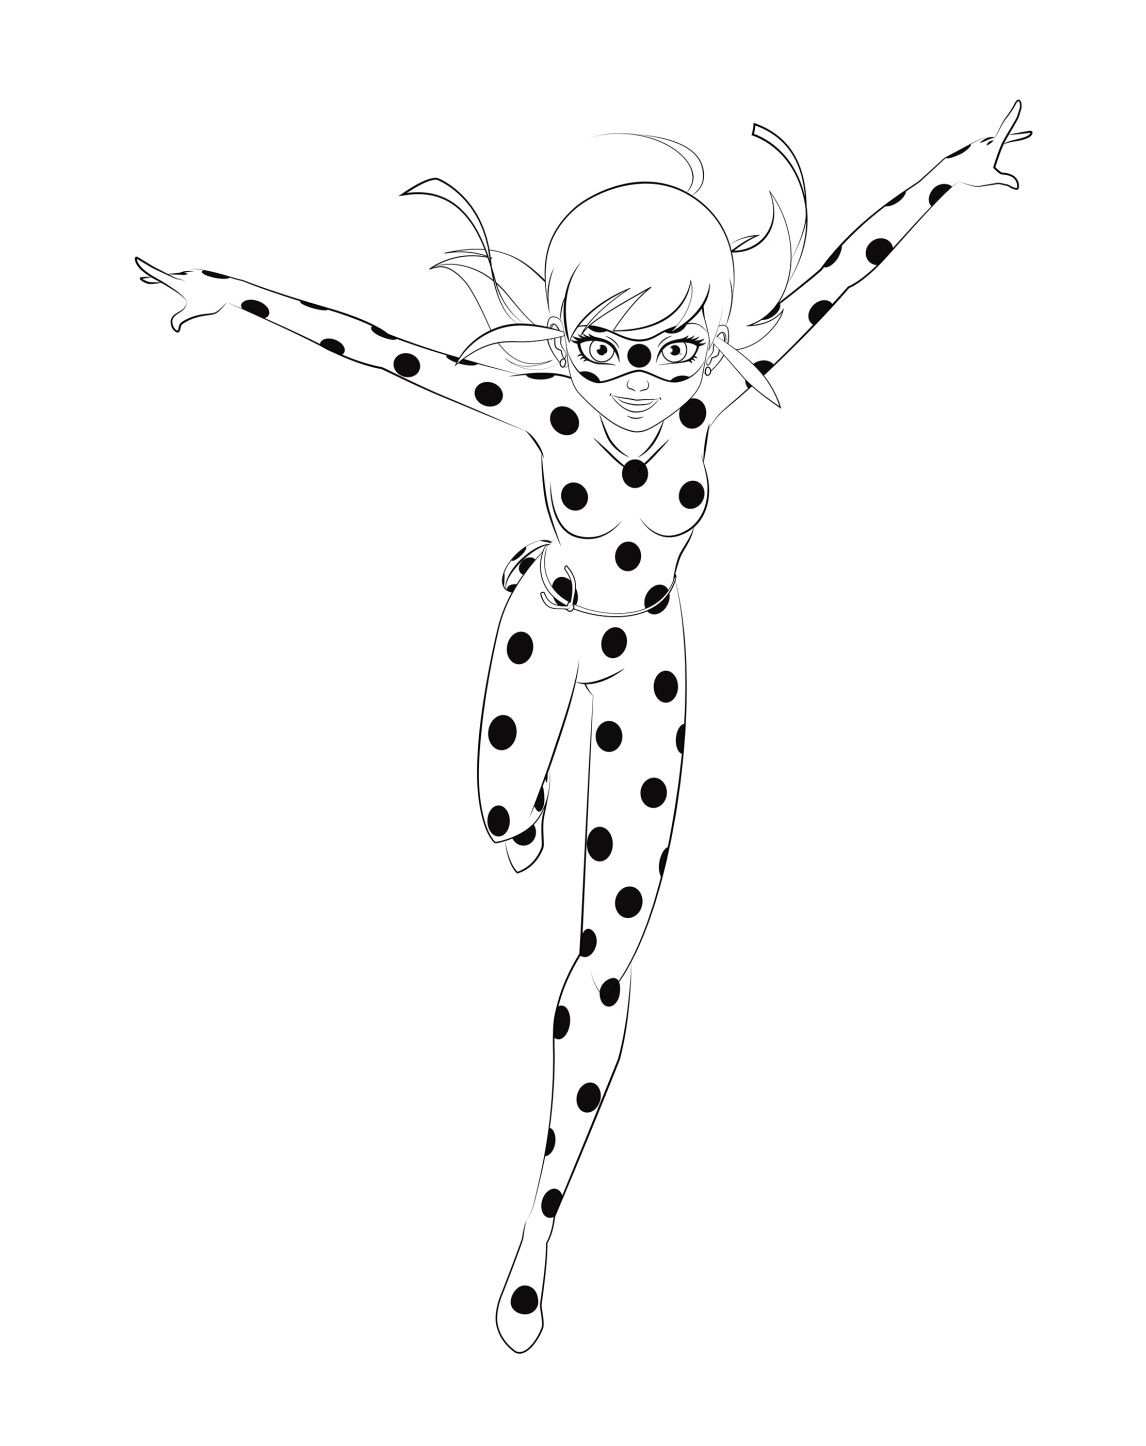 Miraculous Coloring Pages At Getdrawings Free Download